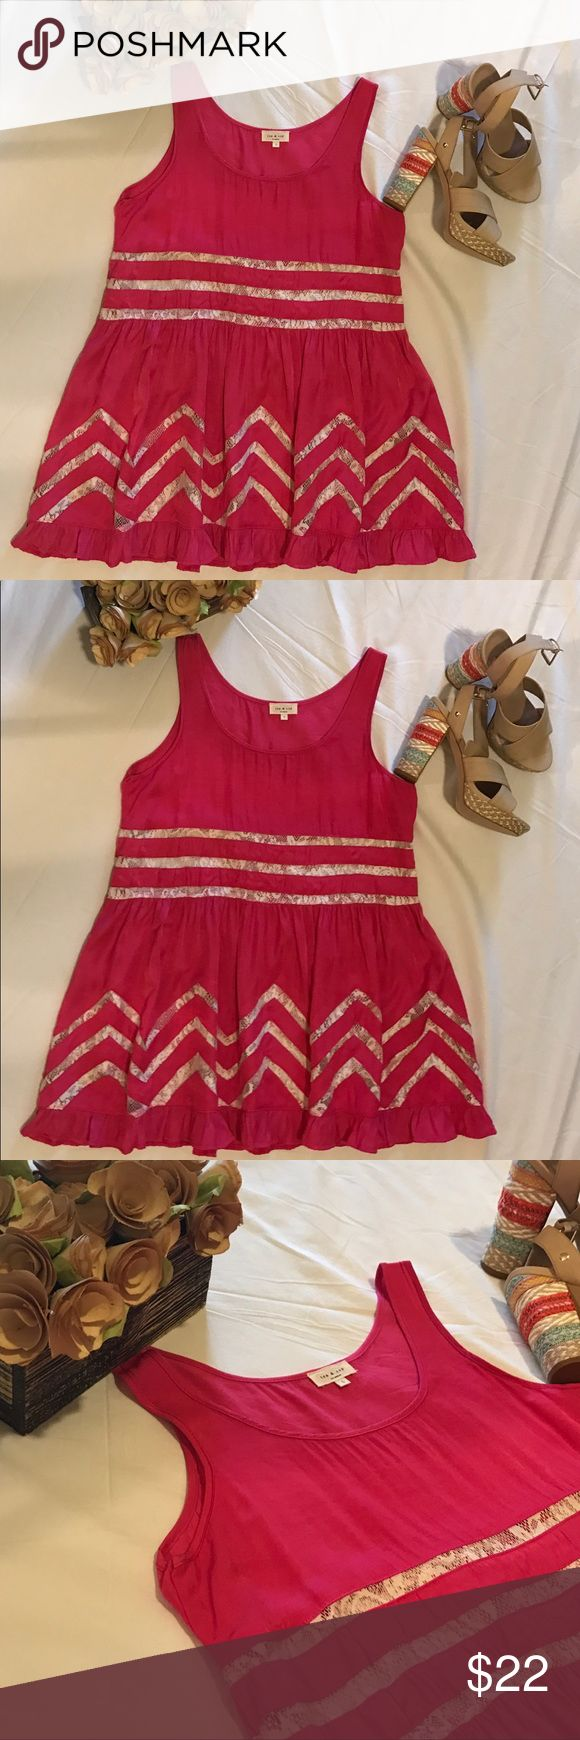 Pink and lace trapeze slip shift dress Small NEW Tea & Cup Los Angeles Shift Slip dress! New without tags. Never worn! Size small and in perfect condition. This is a pink trapeze slip dress that can be worn various ways! Can be worn in the summer to a bonfire on the beach or it can be worn in the winter with ankle booties! I have also seen the stress styled as a cover-up. Your options are endless.! The dress is accented with soft lace detail and super cute ruffled hem. Size Small measures…